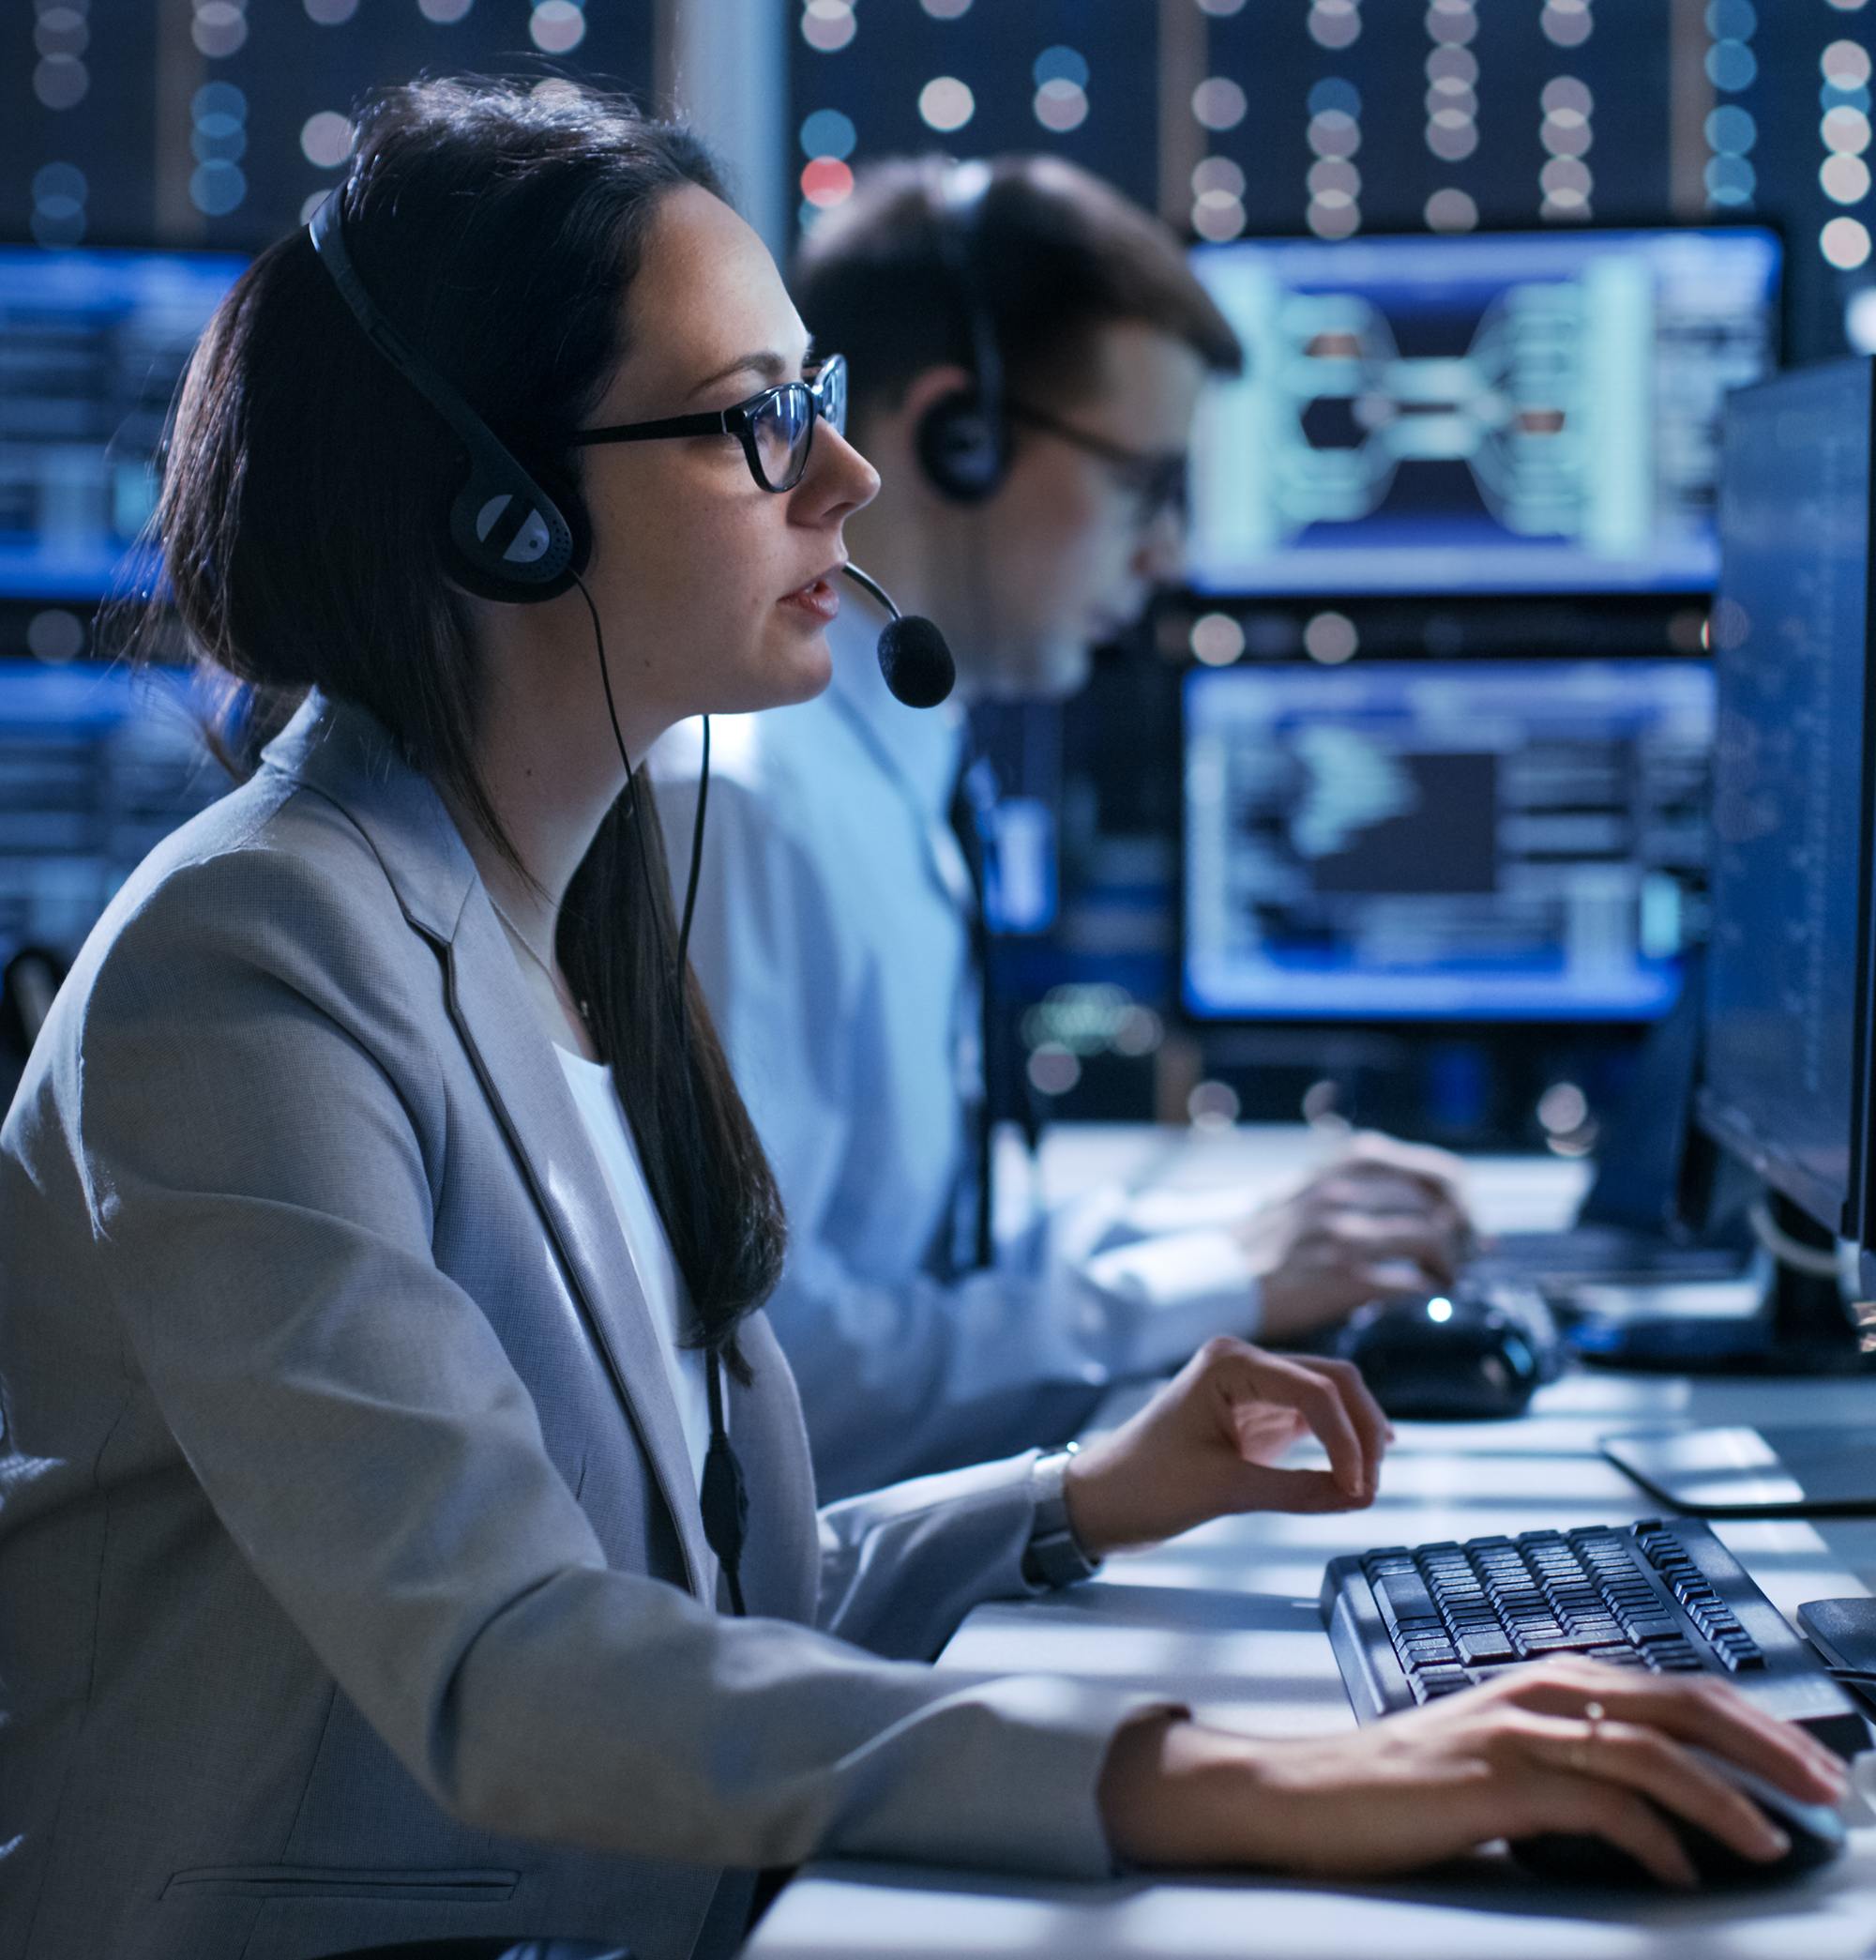 Female working in a Technical Support Team